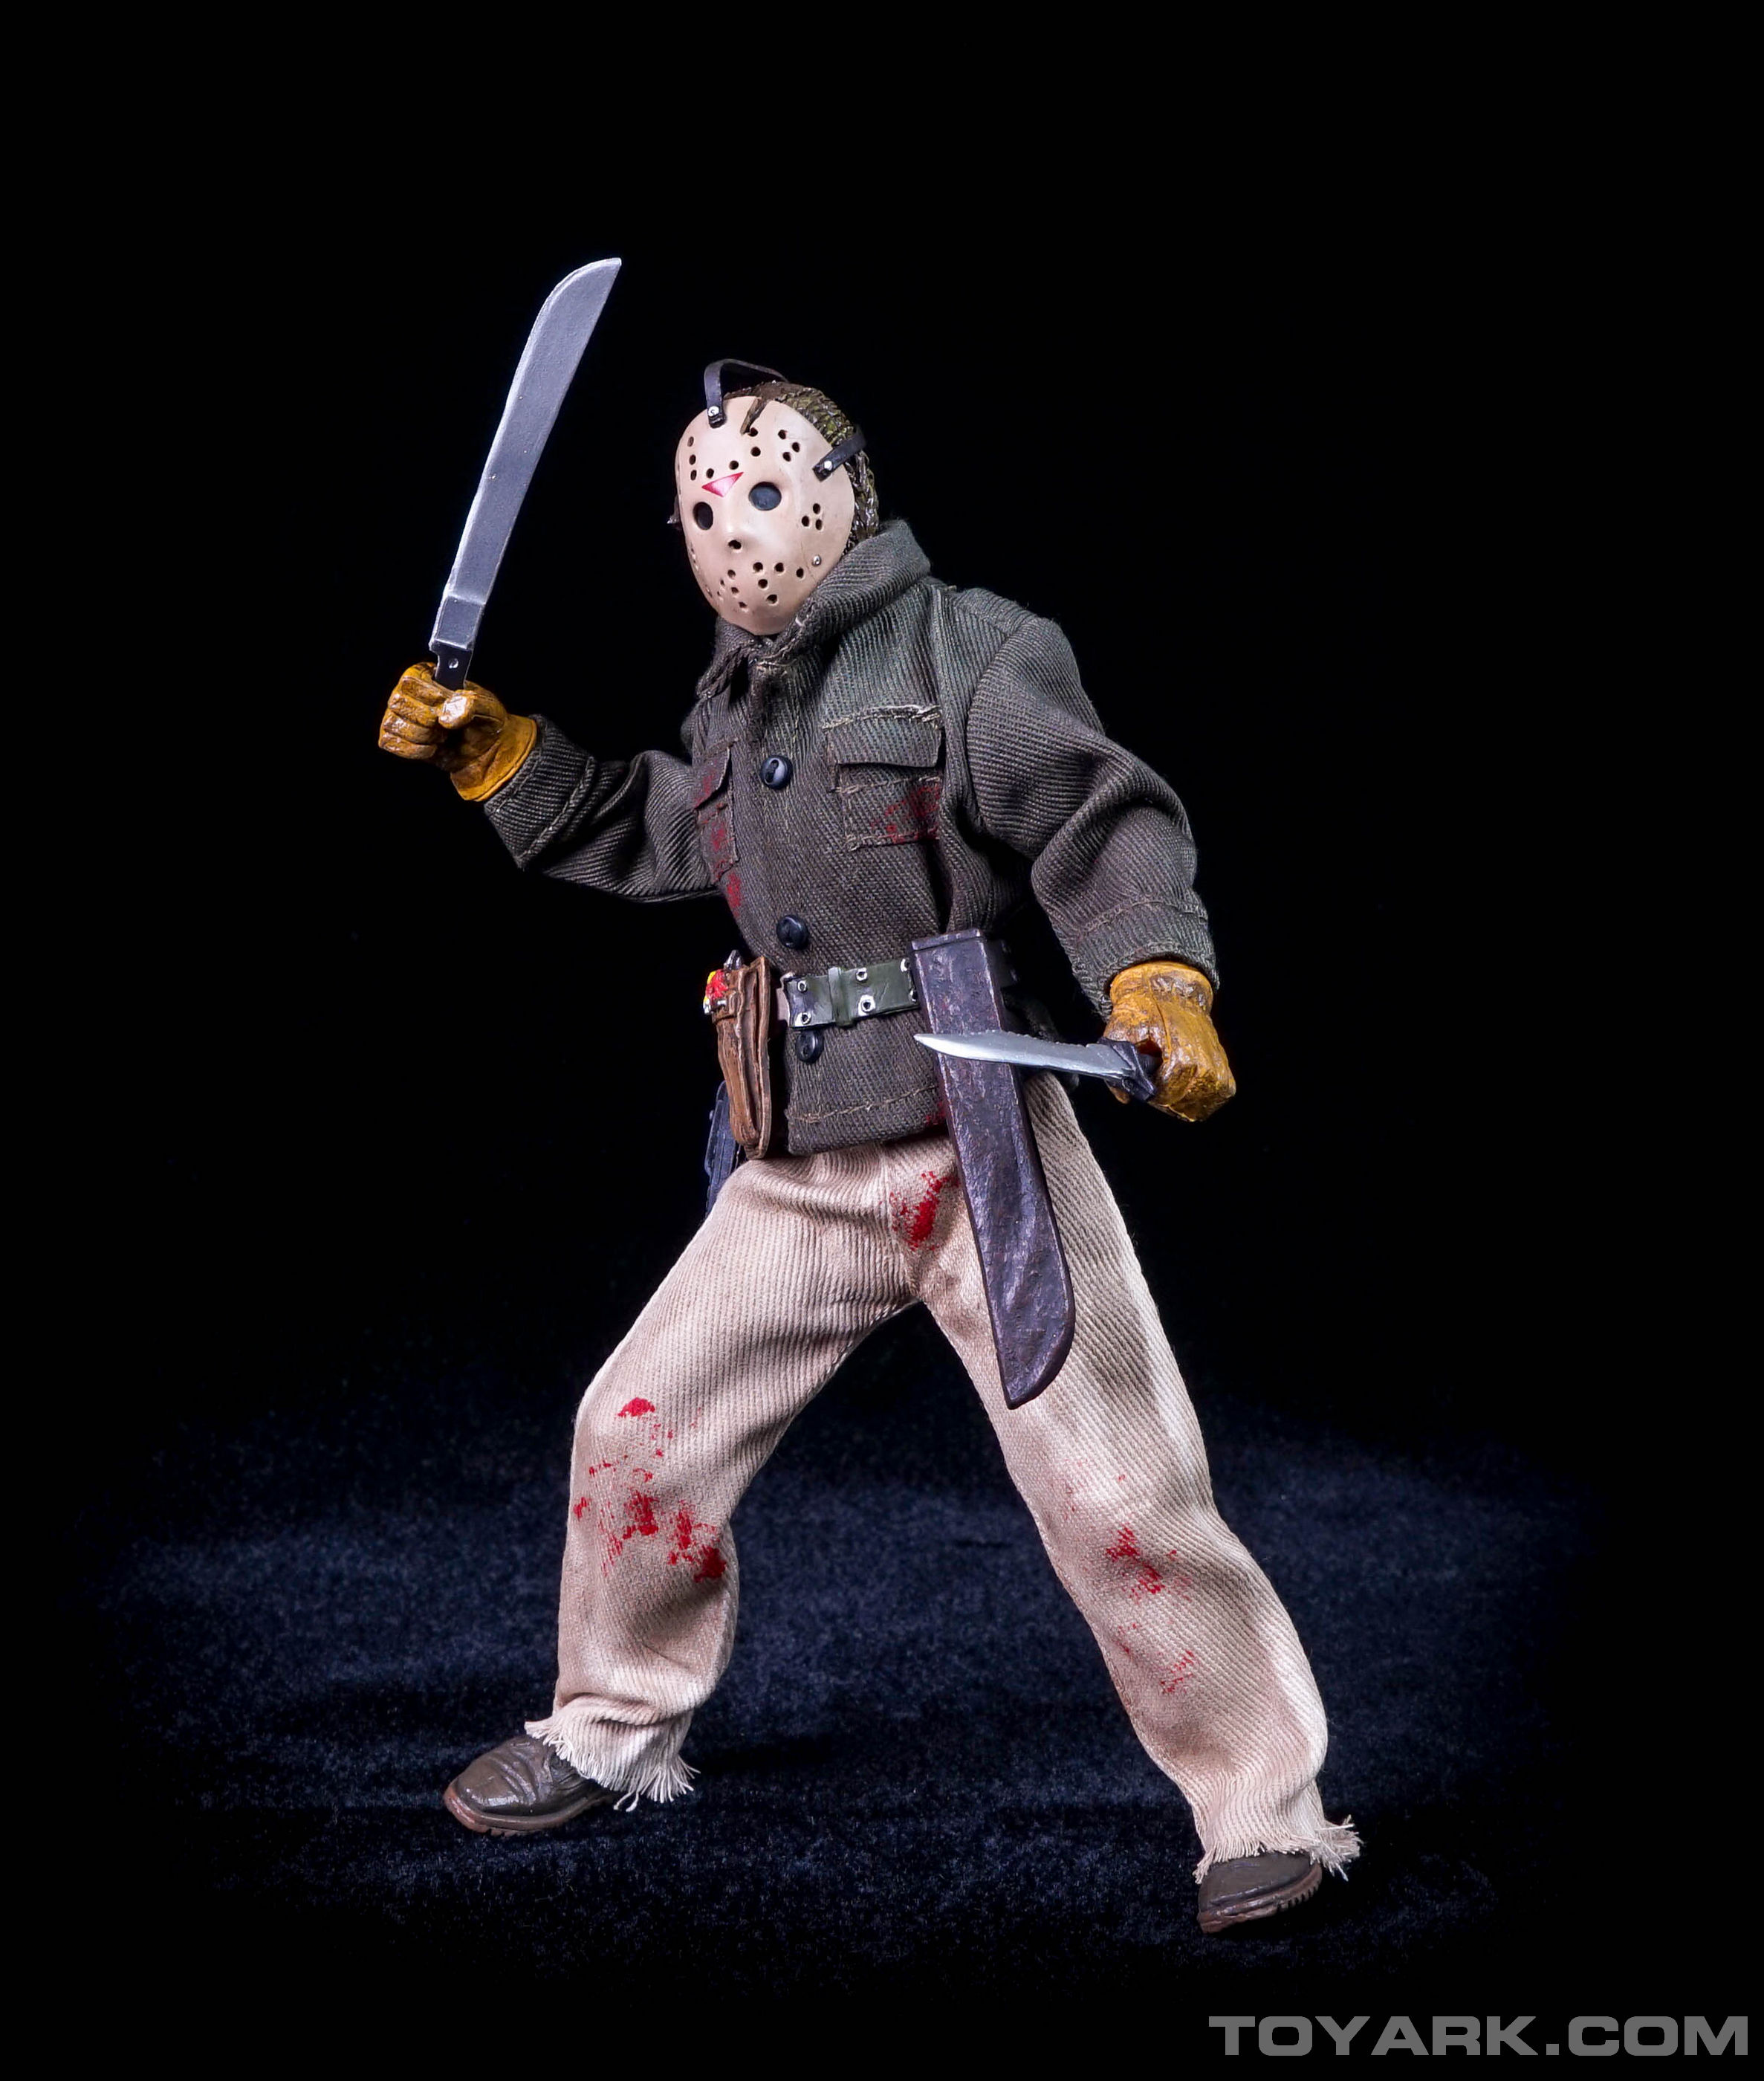 http://news.toyark.com/wp-content/uploads/sites/4/2015/08/Friday-The-13th-Part-6-Retro-Jason-027.jpg